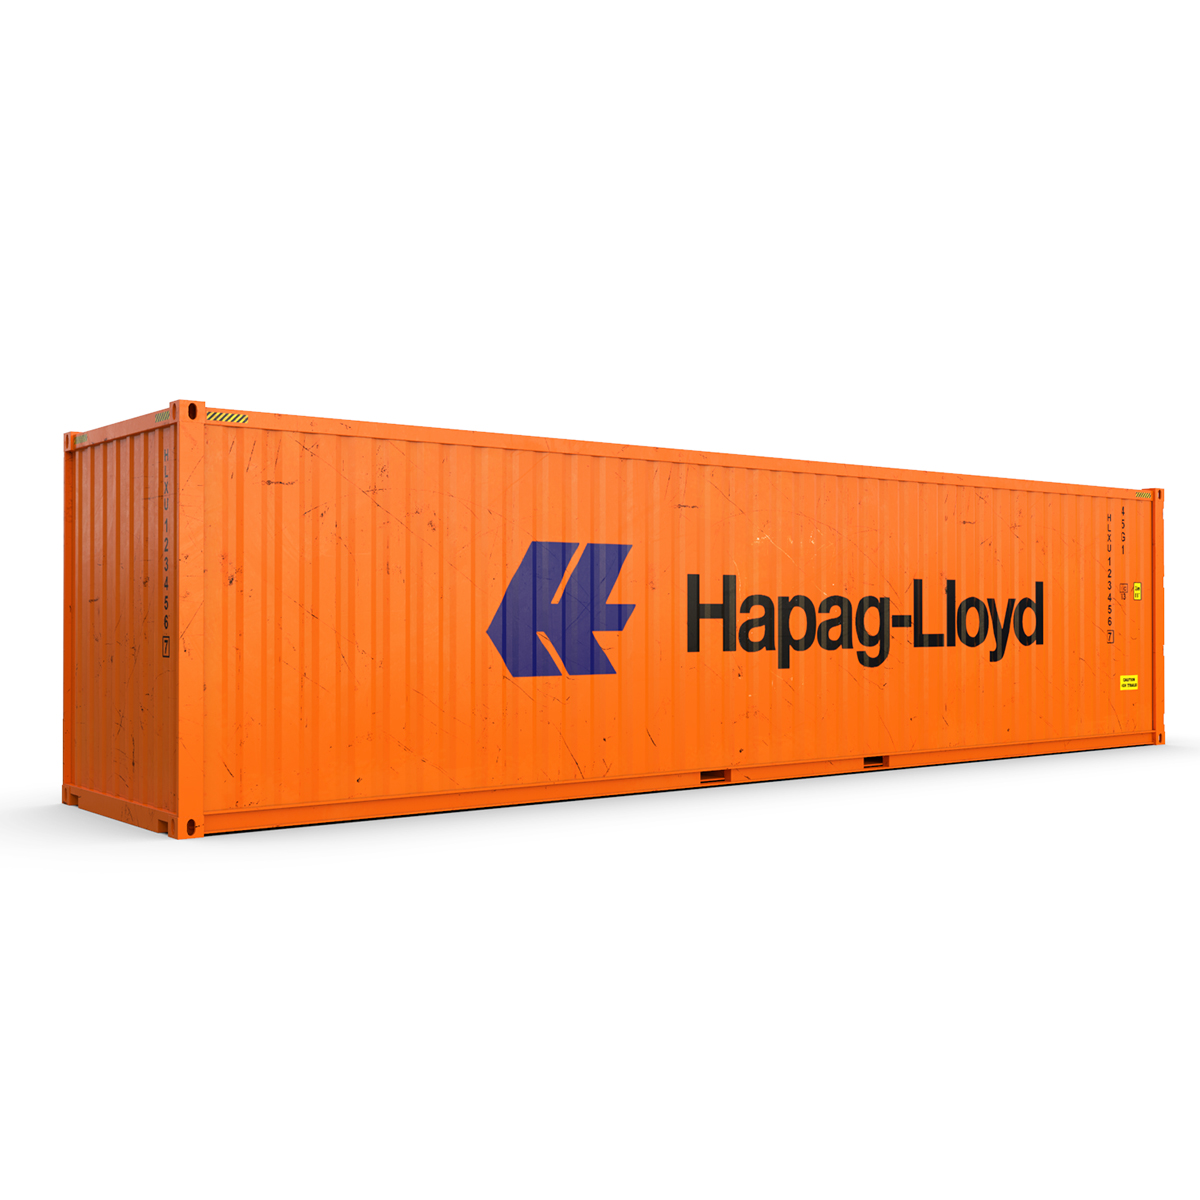 40 feet high cube hapag lloyd shipping container 3d model max fbx ma mb texture obj 278421